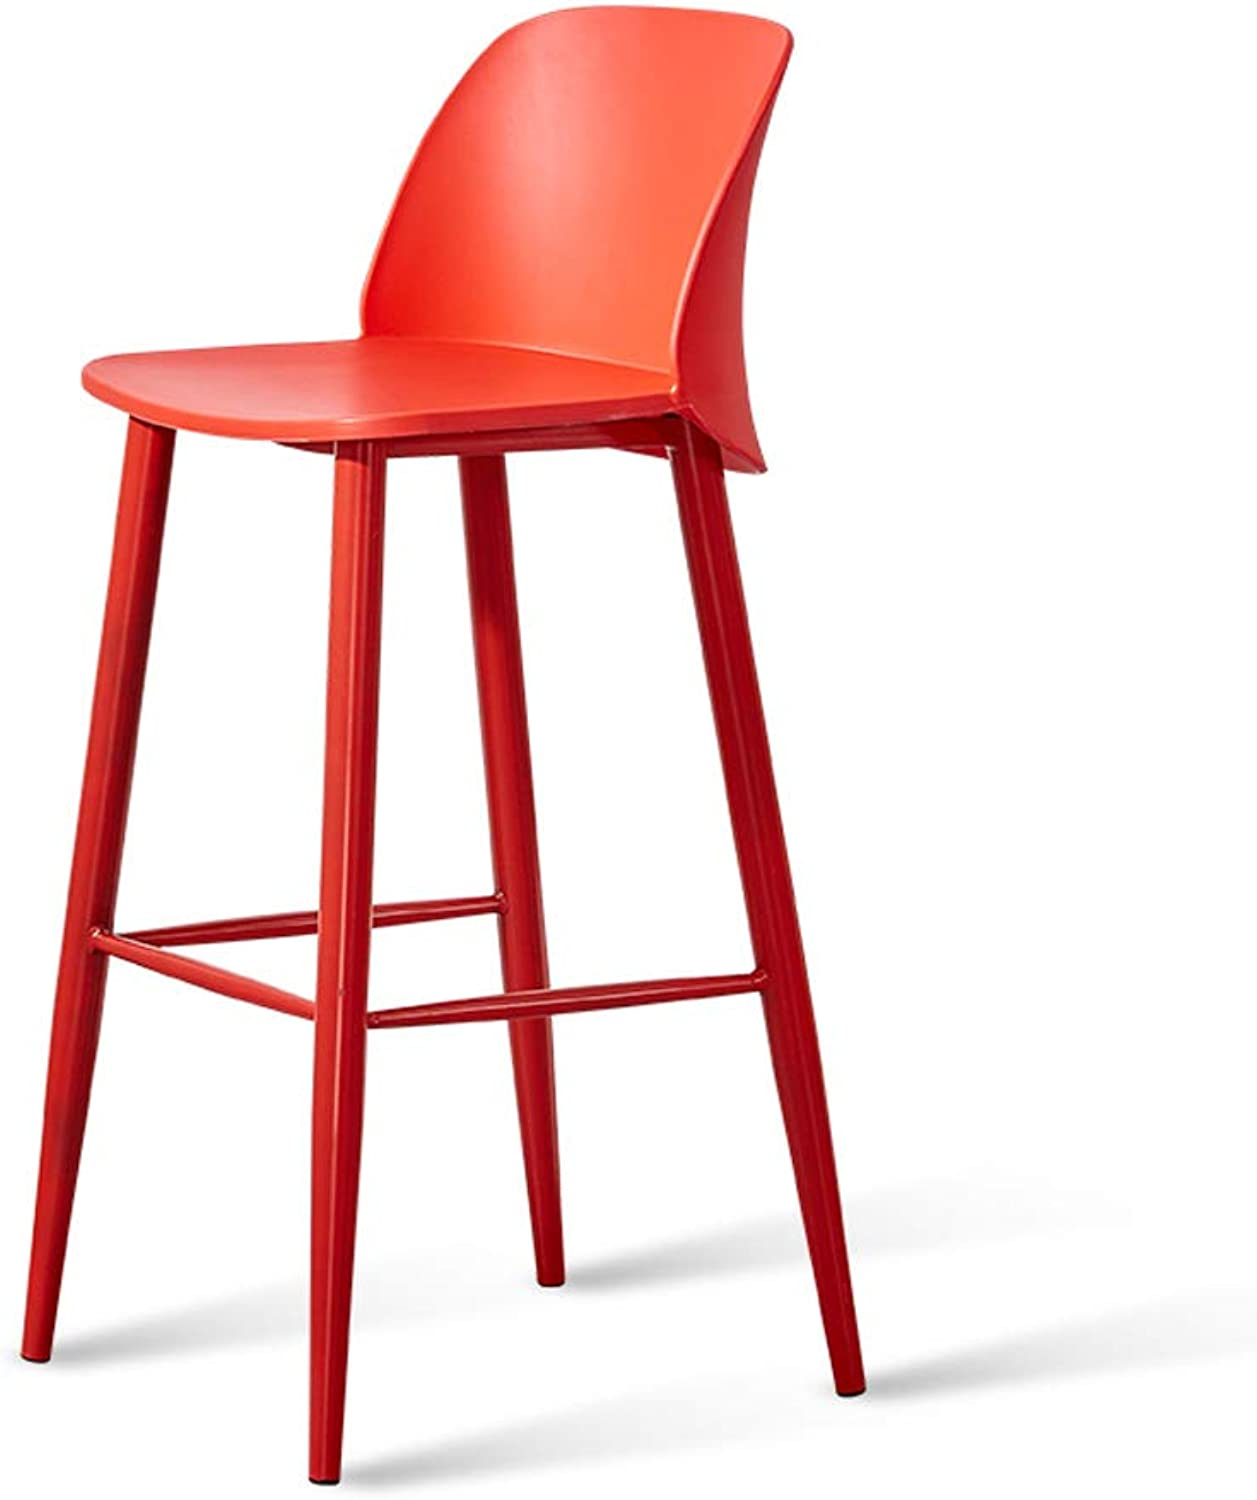 GY Bar Stool, Simple Bar Chair, with Backrest PP Plastic Chair Leisure Pole Stool, Counter Height Breakfast High Stool, Multi color Optional, 74cm (color   RED)